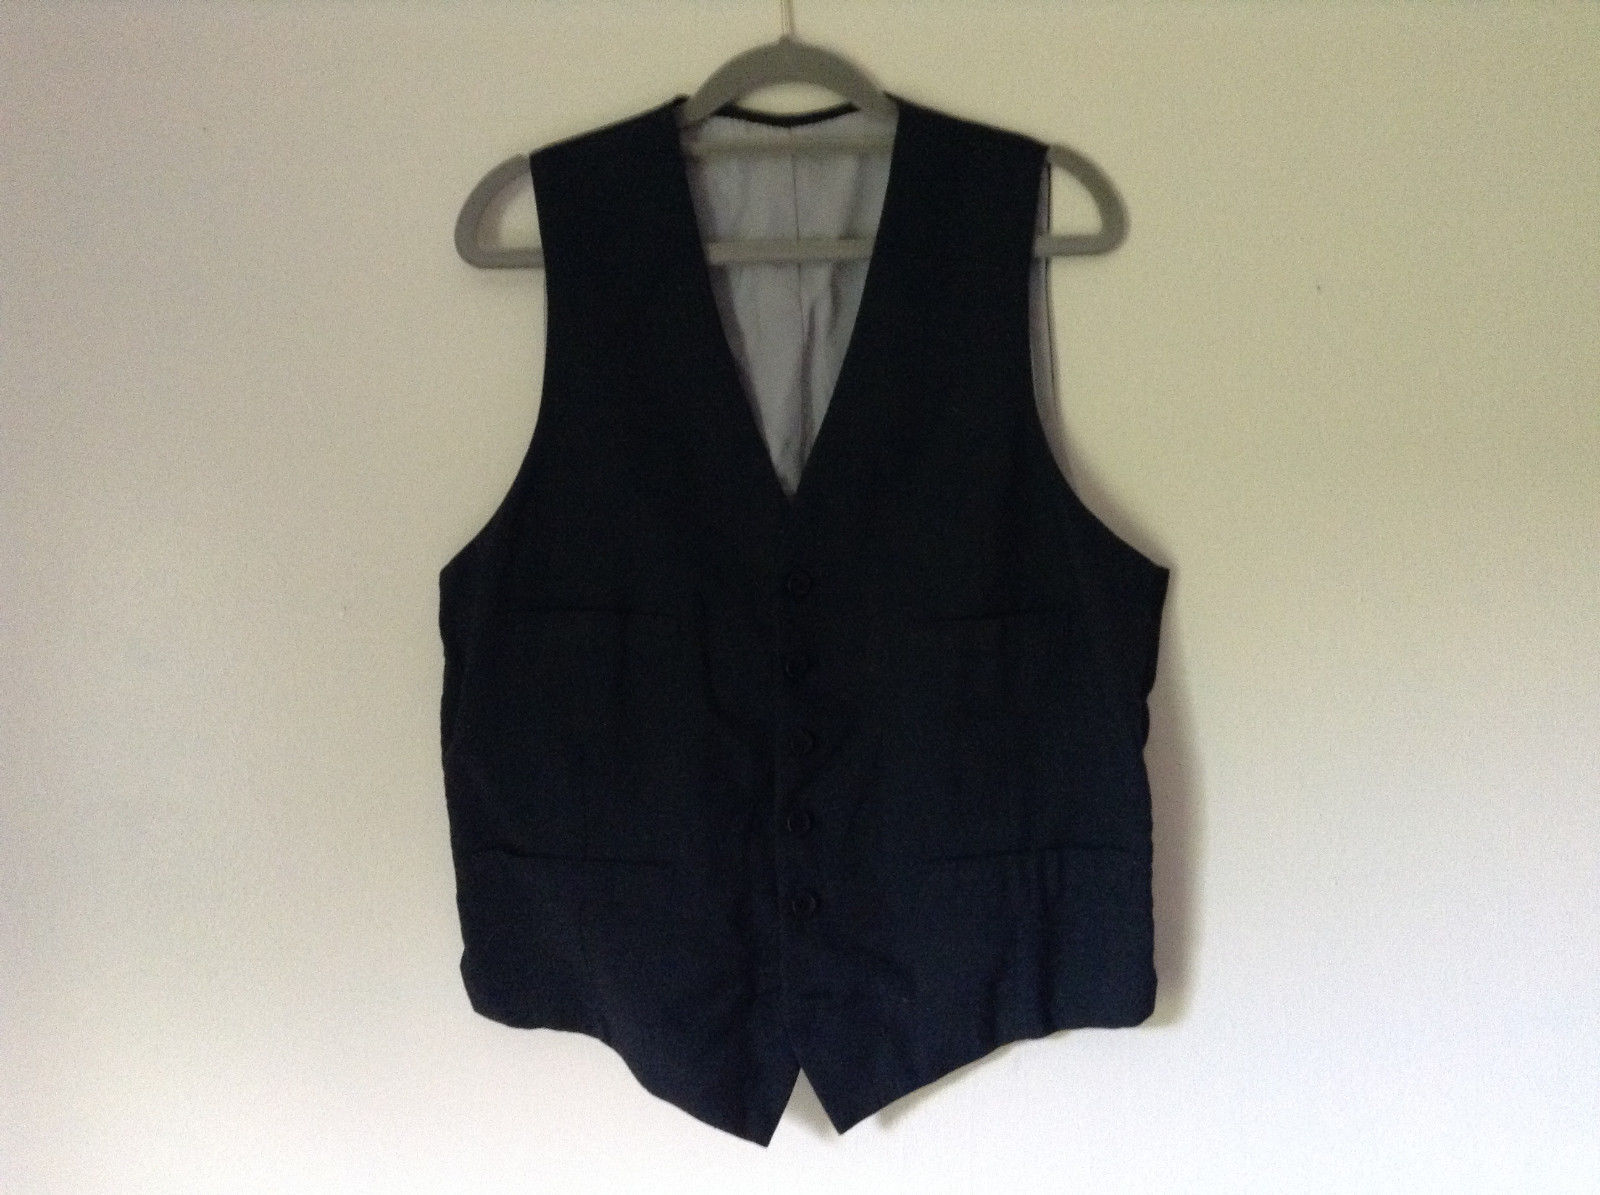 Black Formal Vest with Gray Lining Front Pockets 5 Button Closure V Neck NO TAG